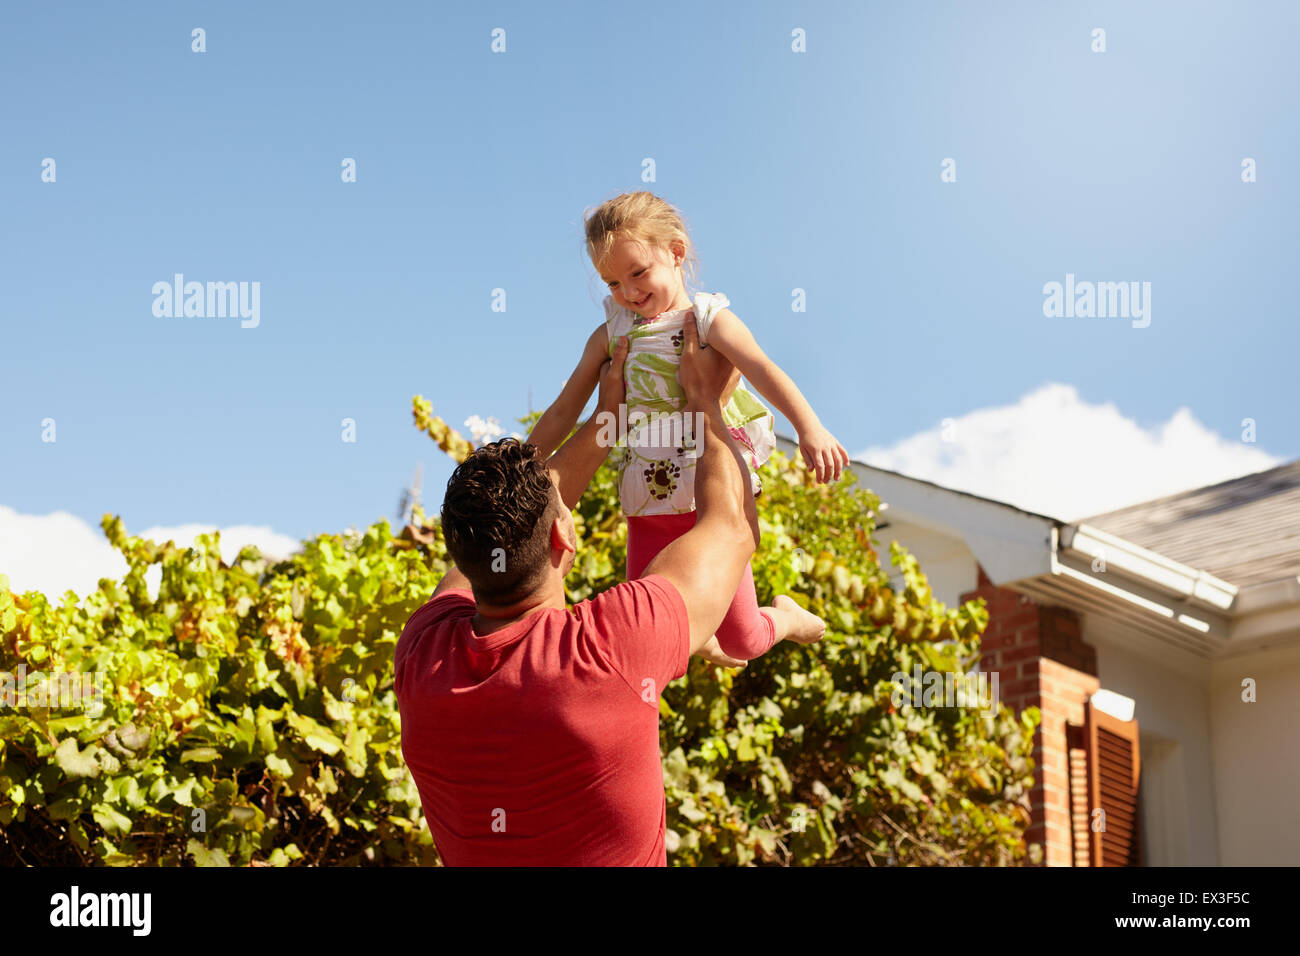 Young man lifting his daughter high in the air. Happy father and daughter playing in their backyard on a sunny day. - Stock Image